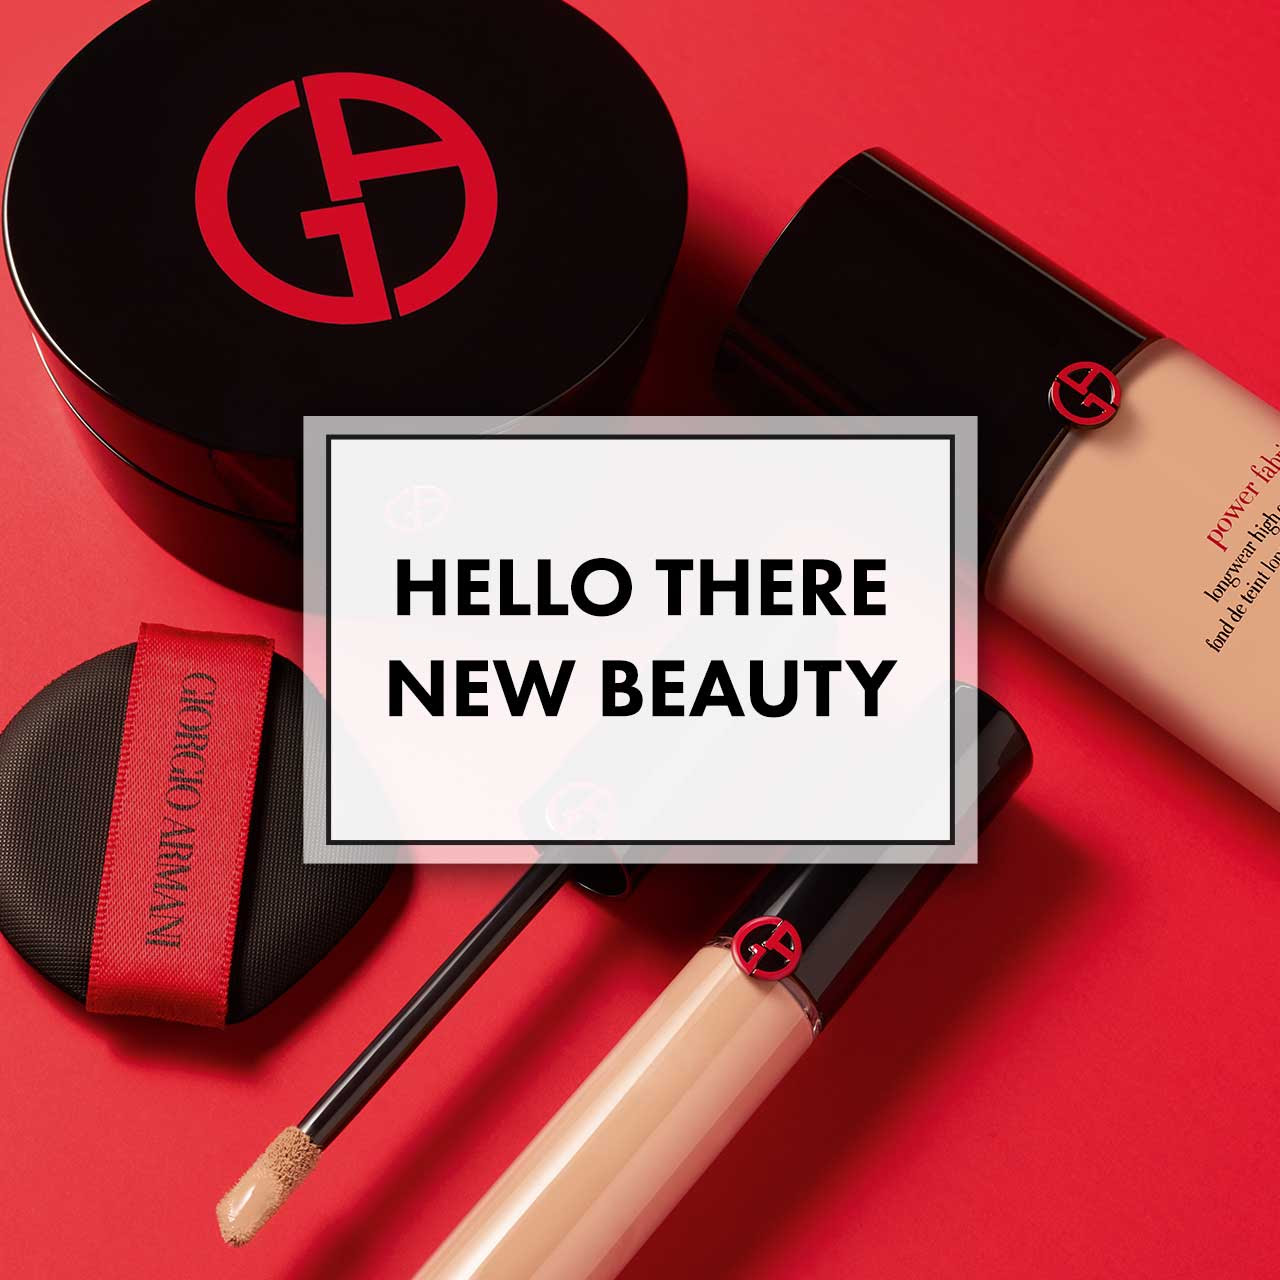 Brown Thomas - New Beauty is waiting for you...